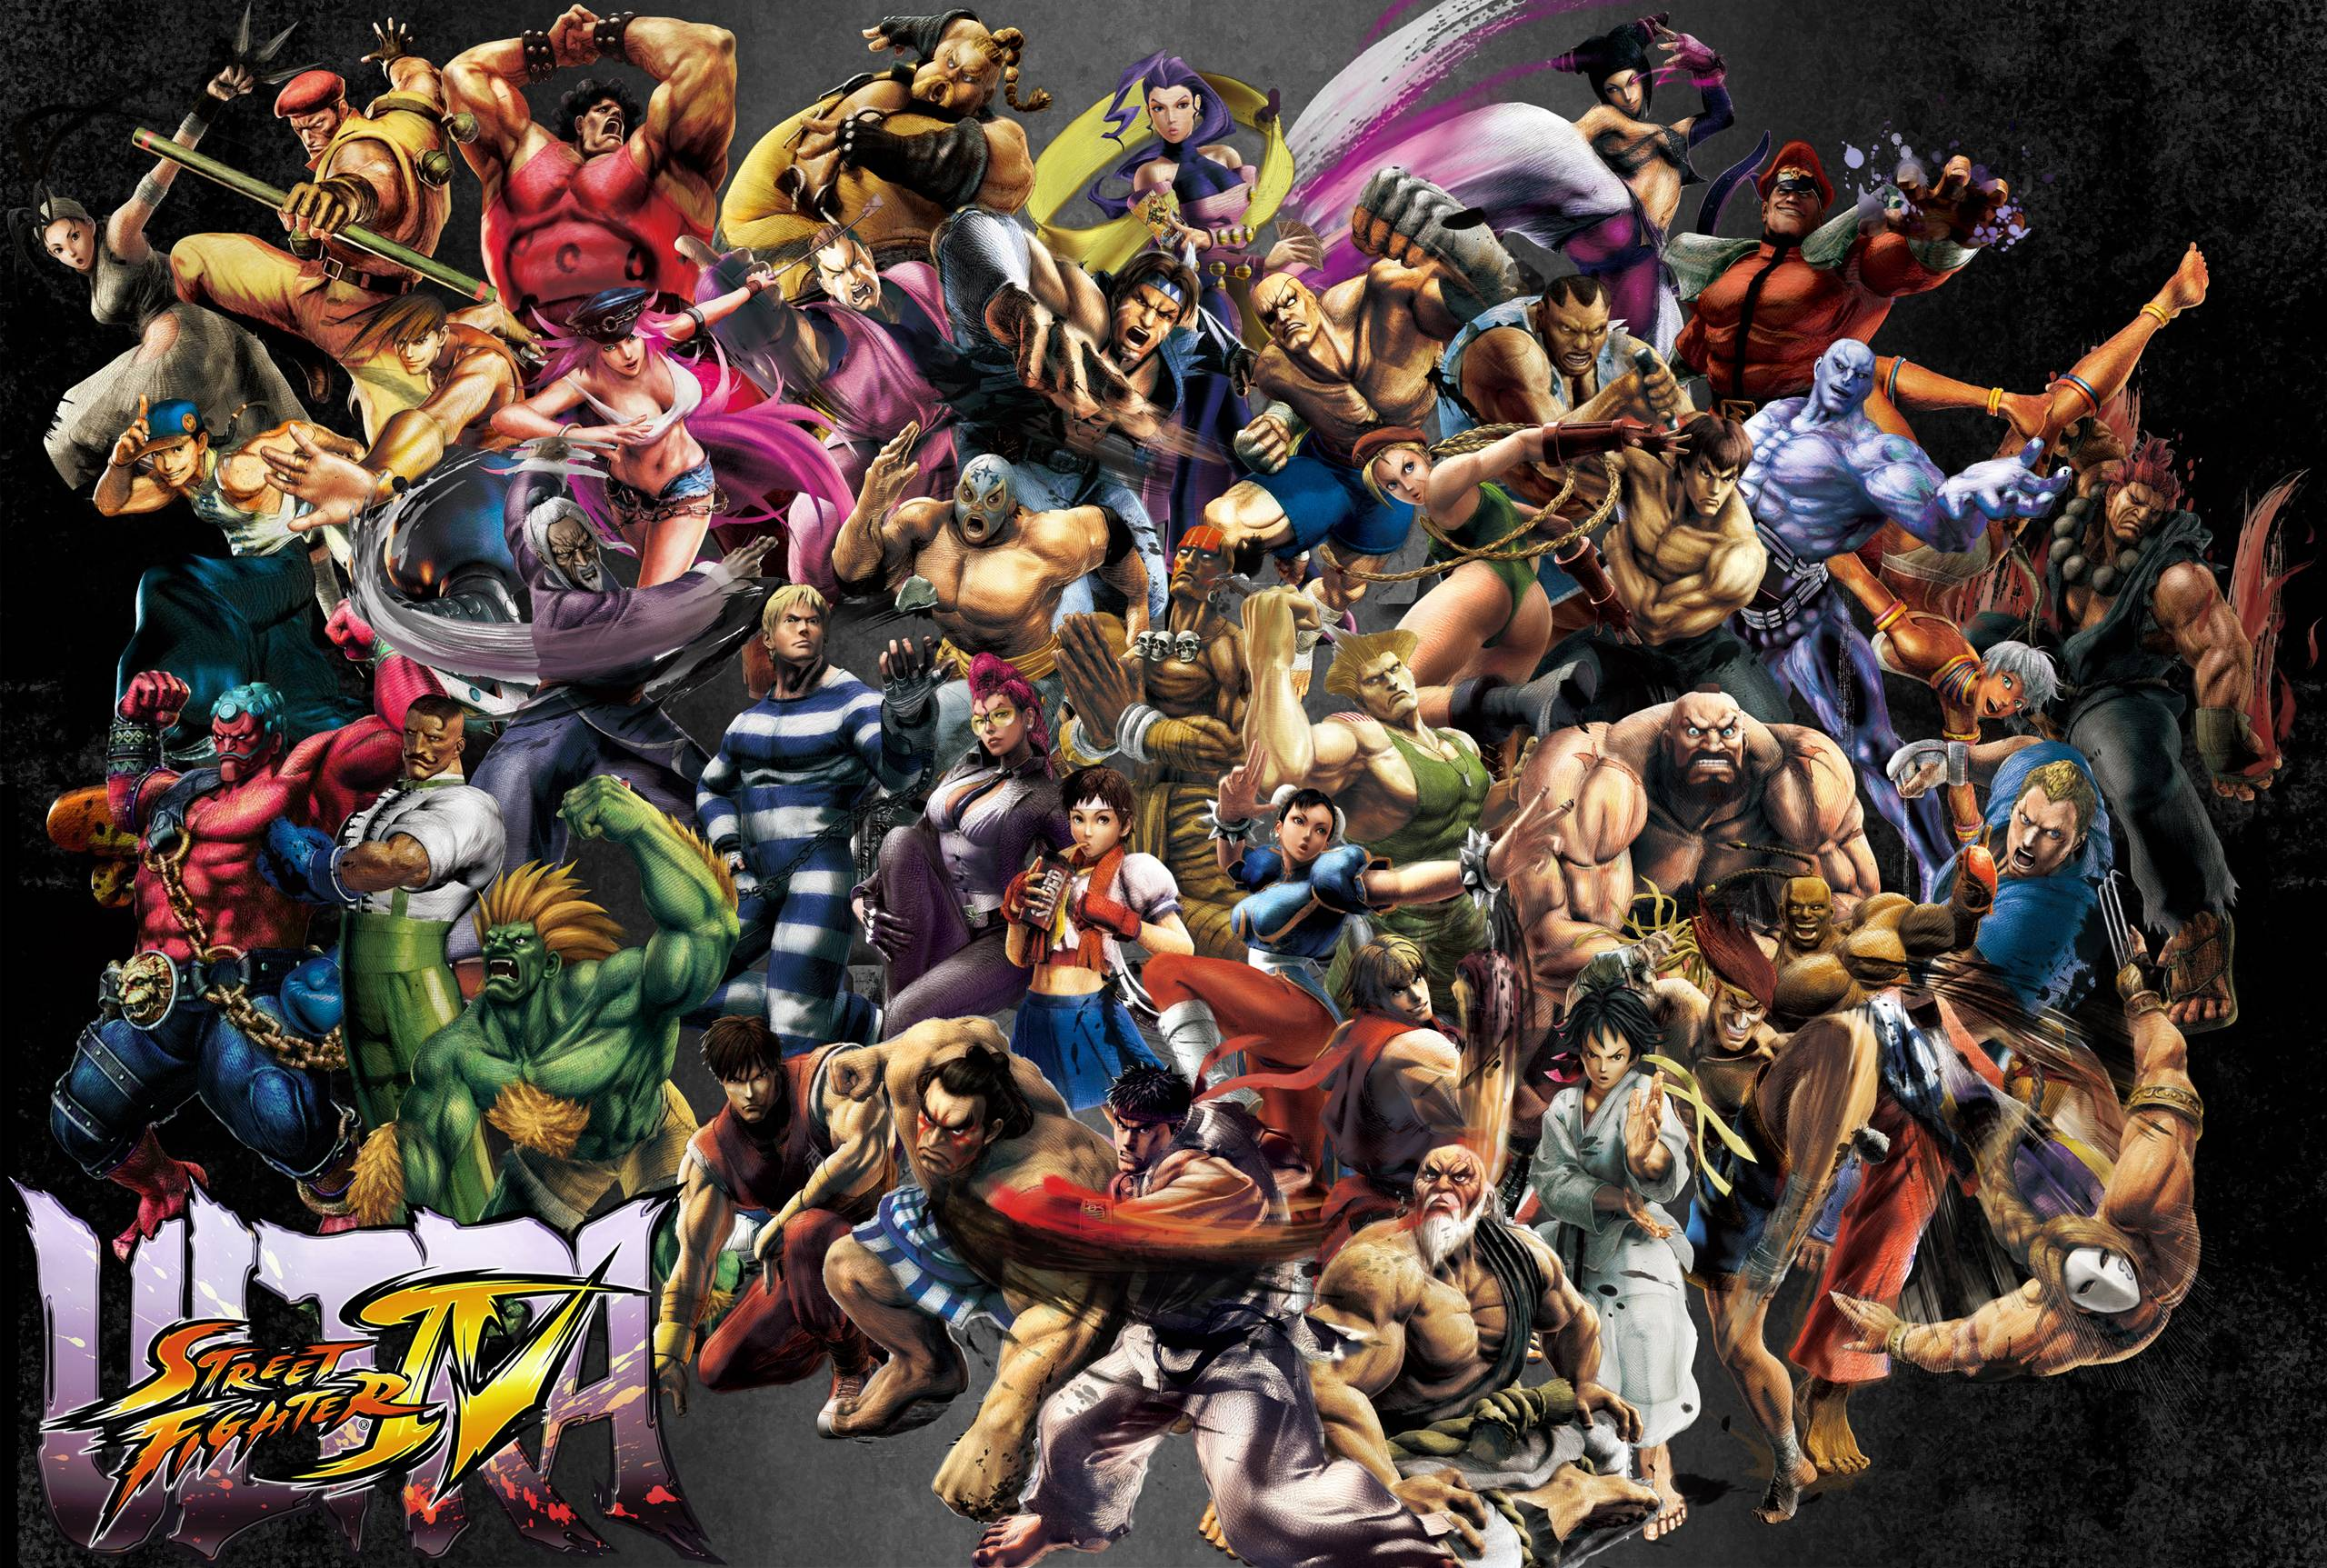 Street Fighter Hd Wallpapers Wallpaper Cave